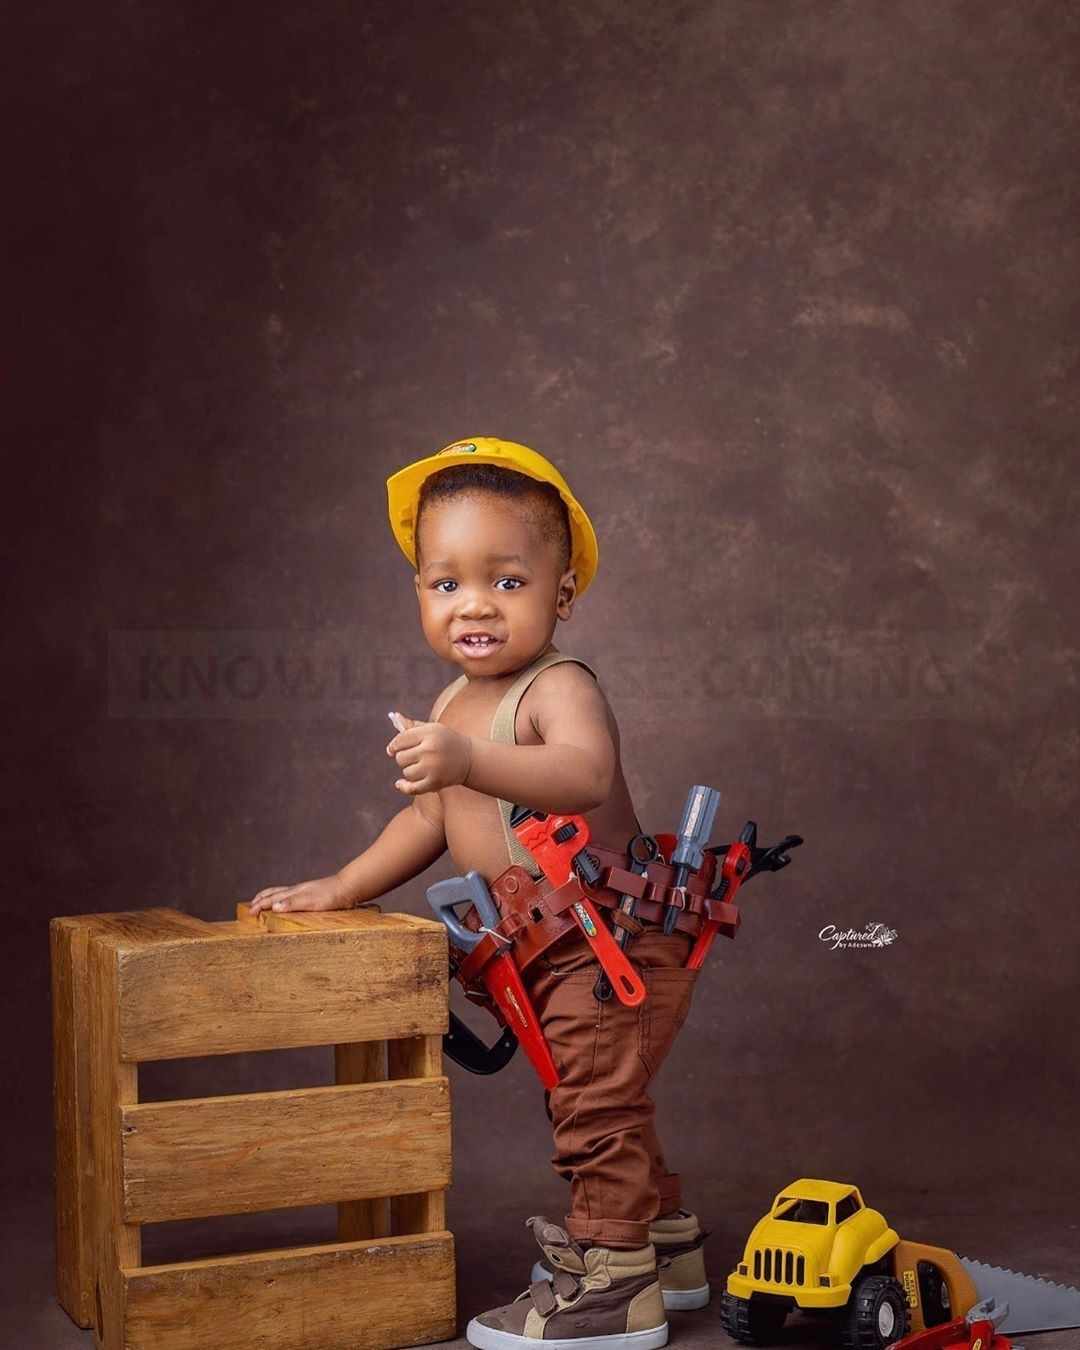 'My peaceful son' – Yoruba Actress, Wumi Toriola pens down Emotional tribute to Celebrate her Son's 1st birthday (PICS)